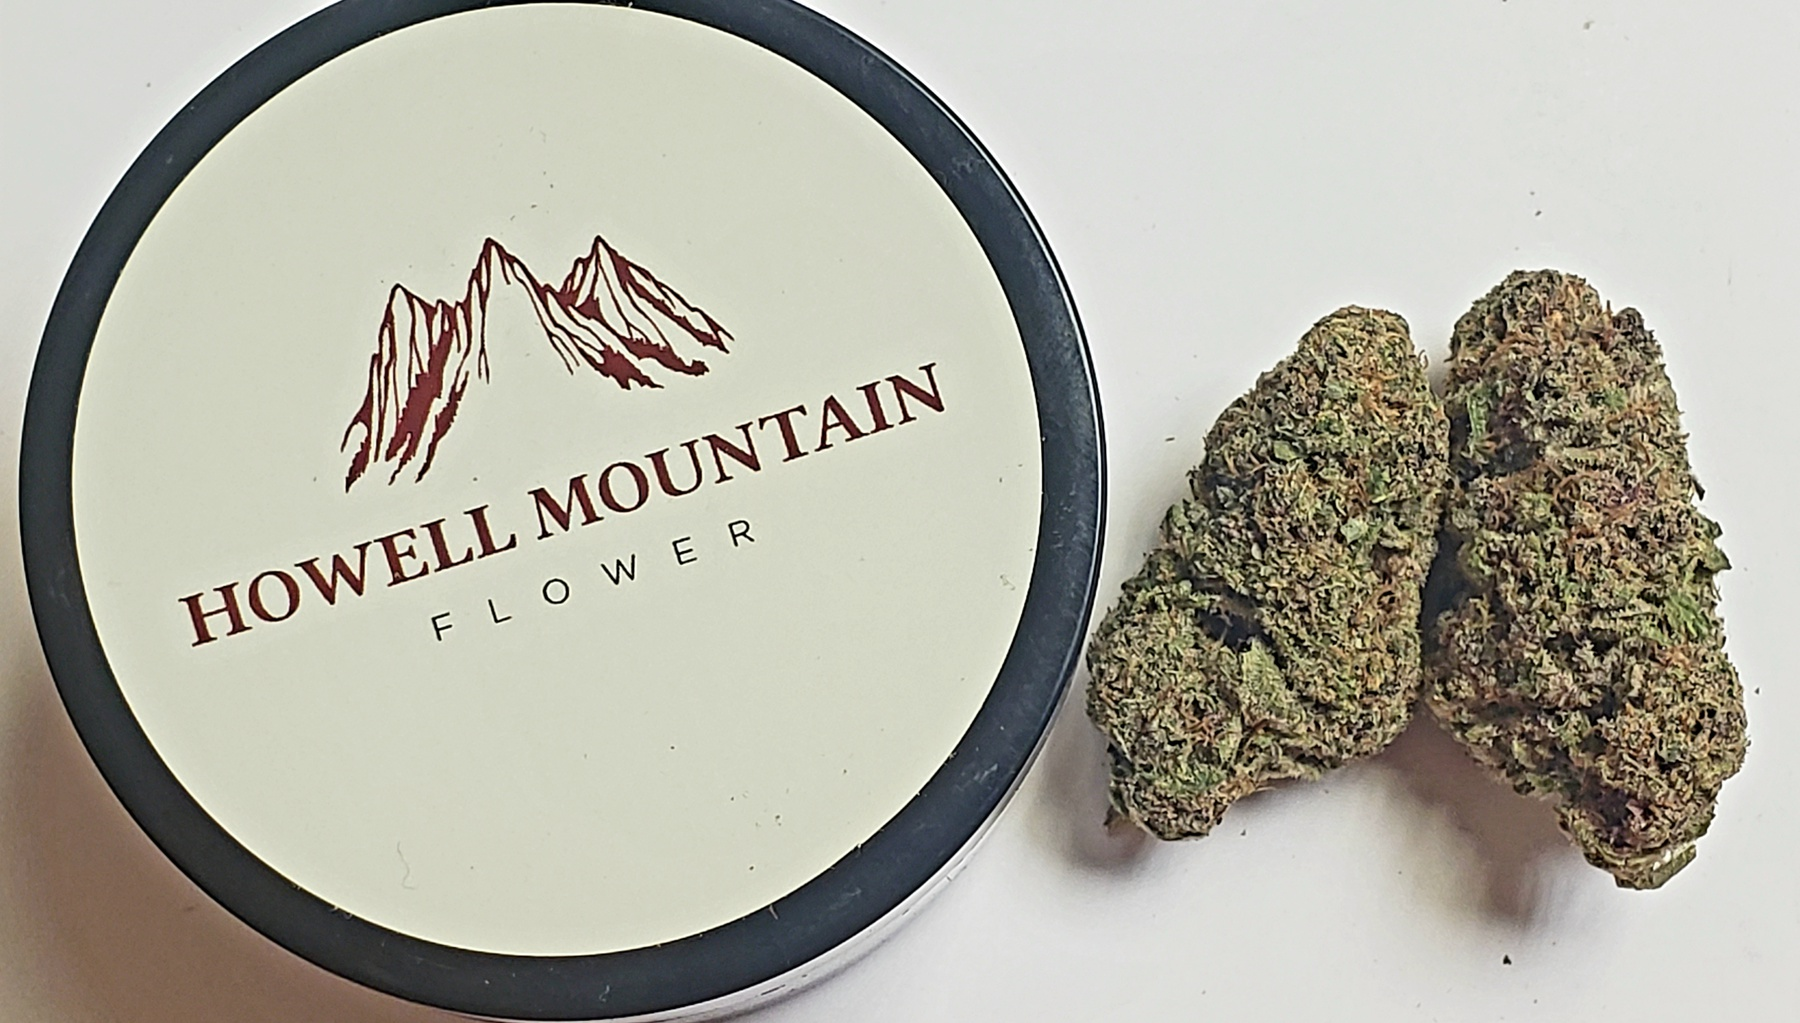 Gas Mask by Howell Mountain Premium Flowers**  Product image